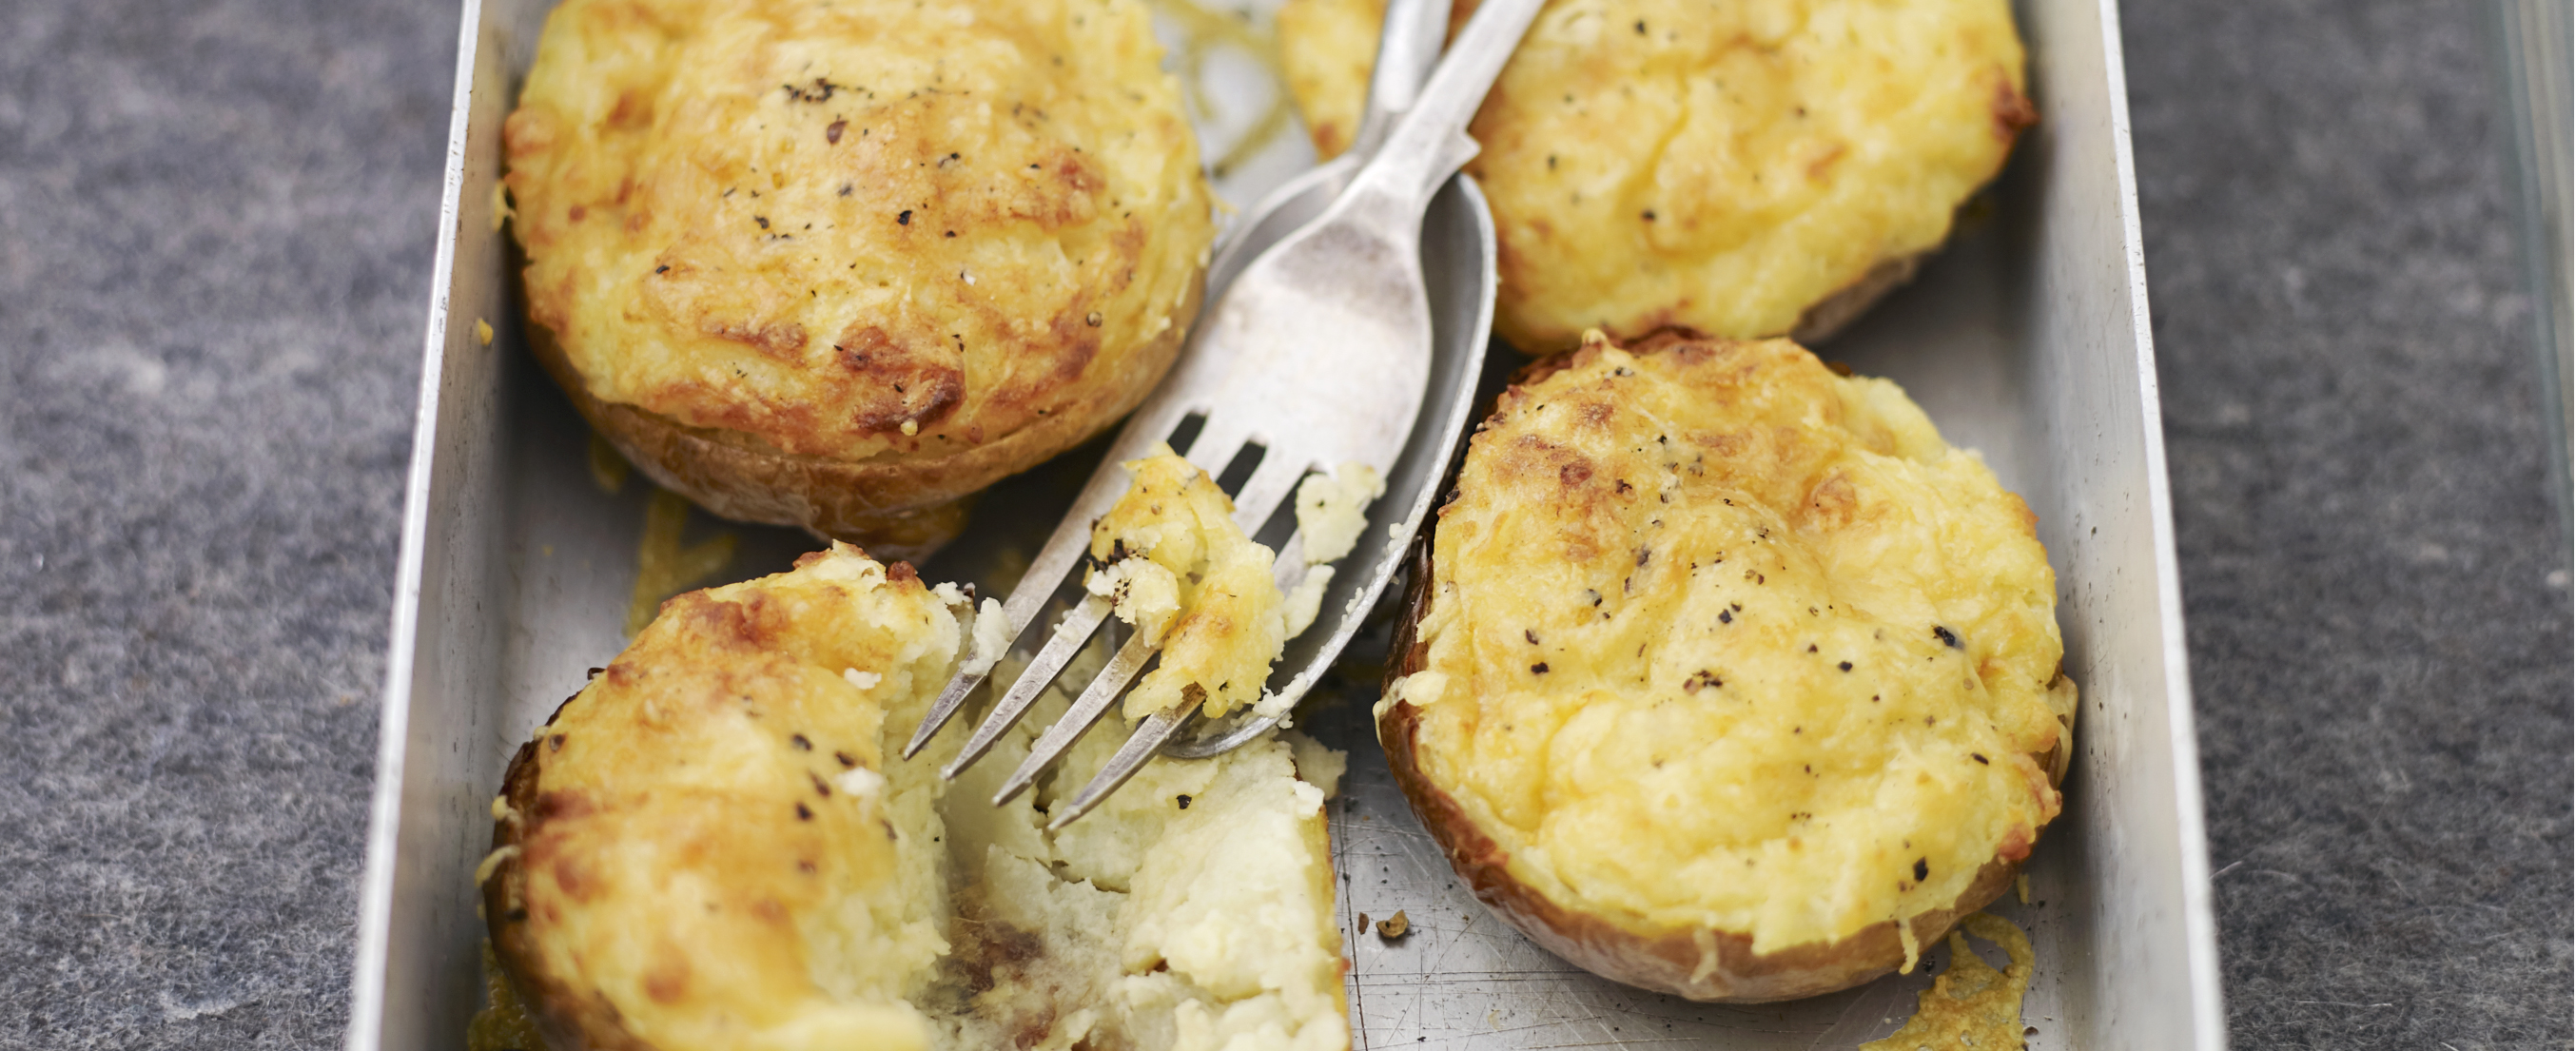 Perfect Baked Jacket Potato Guide with Topping Ideas ...